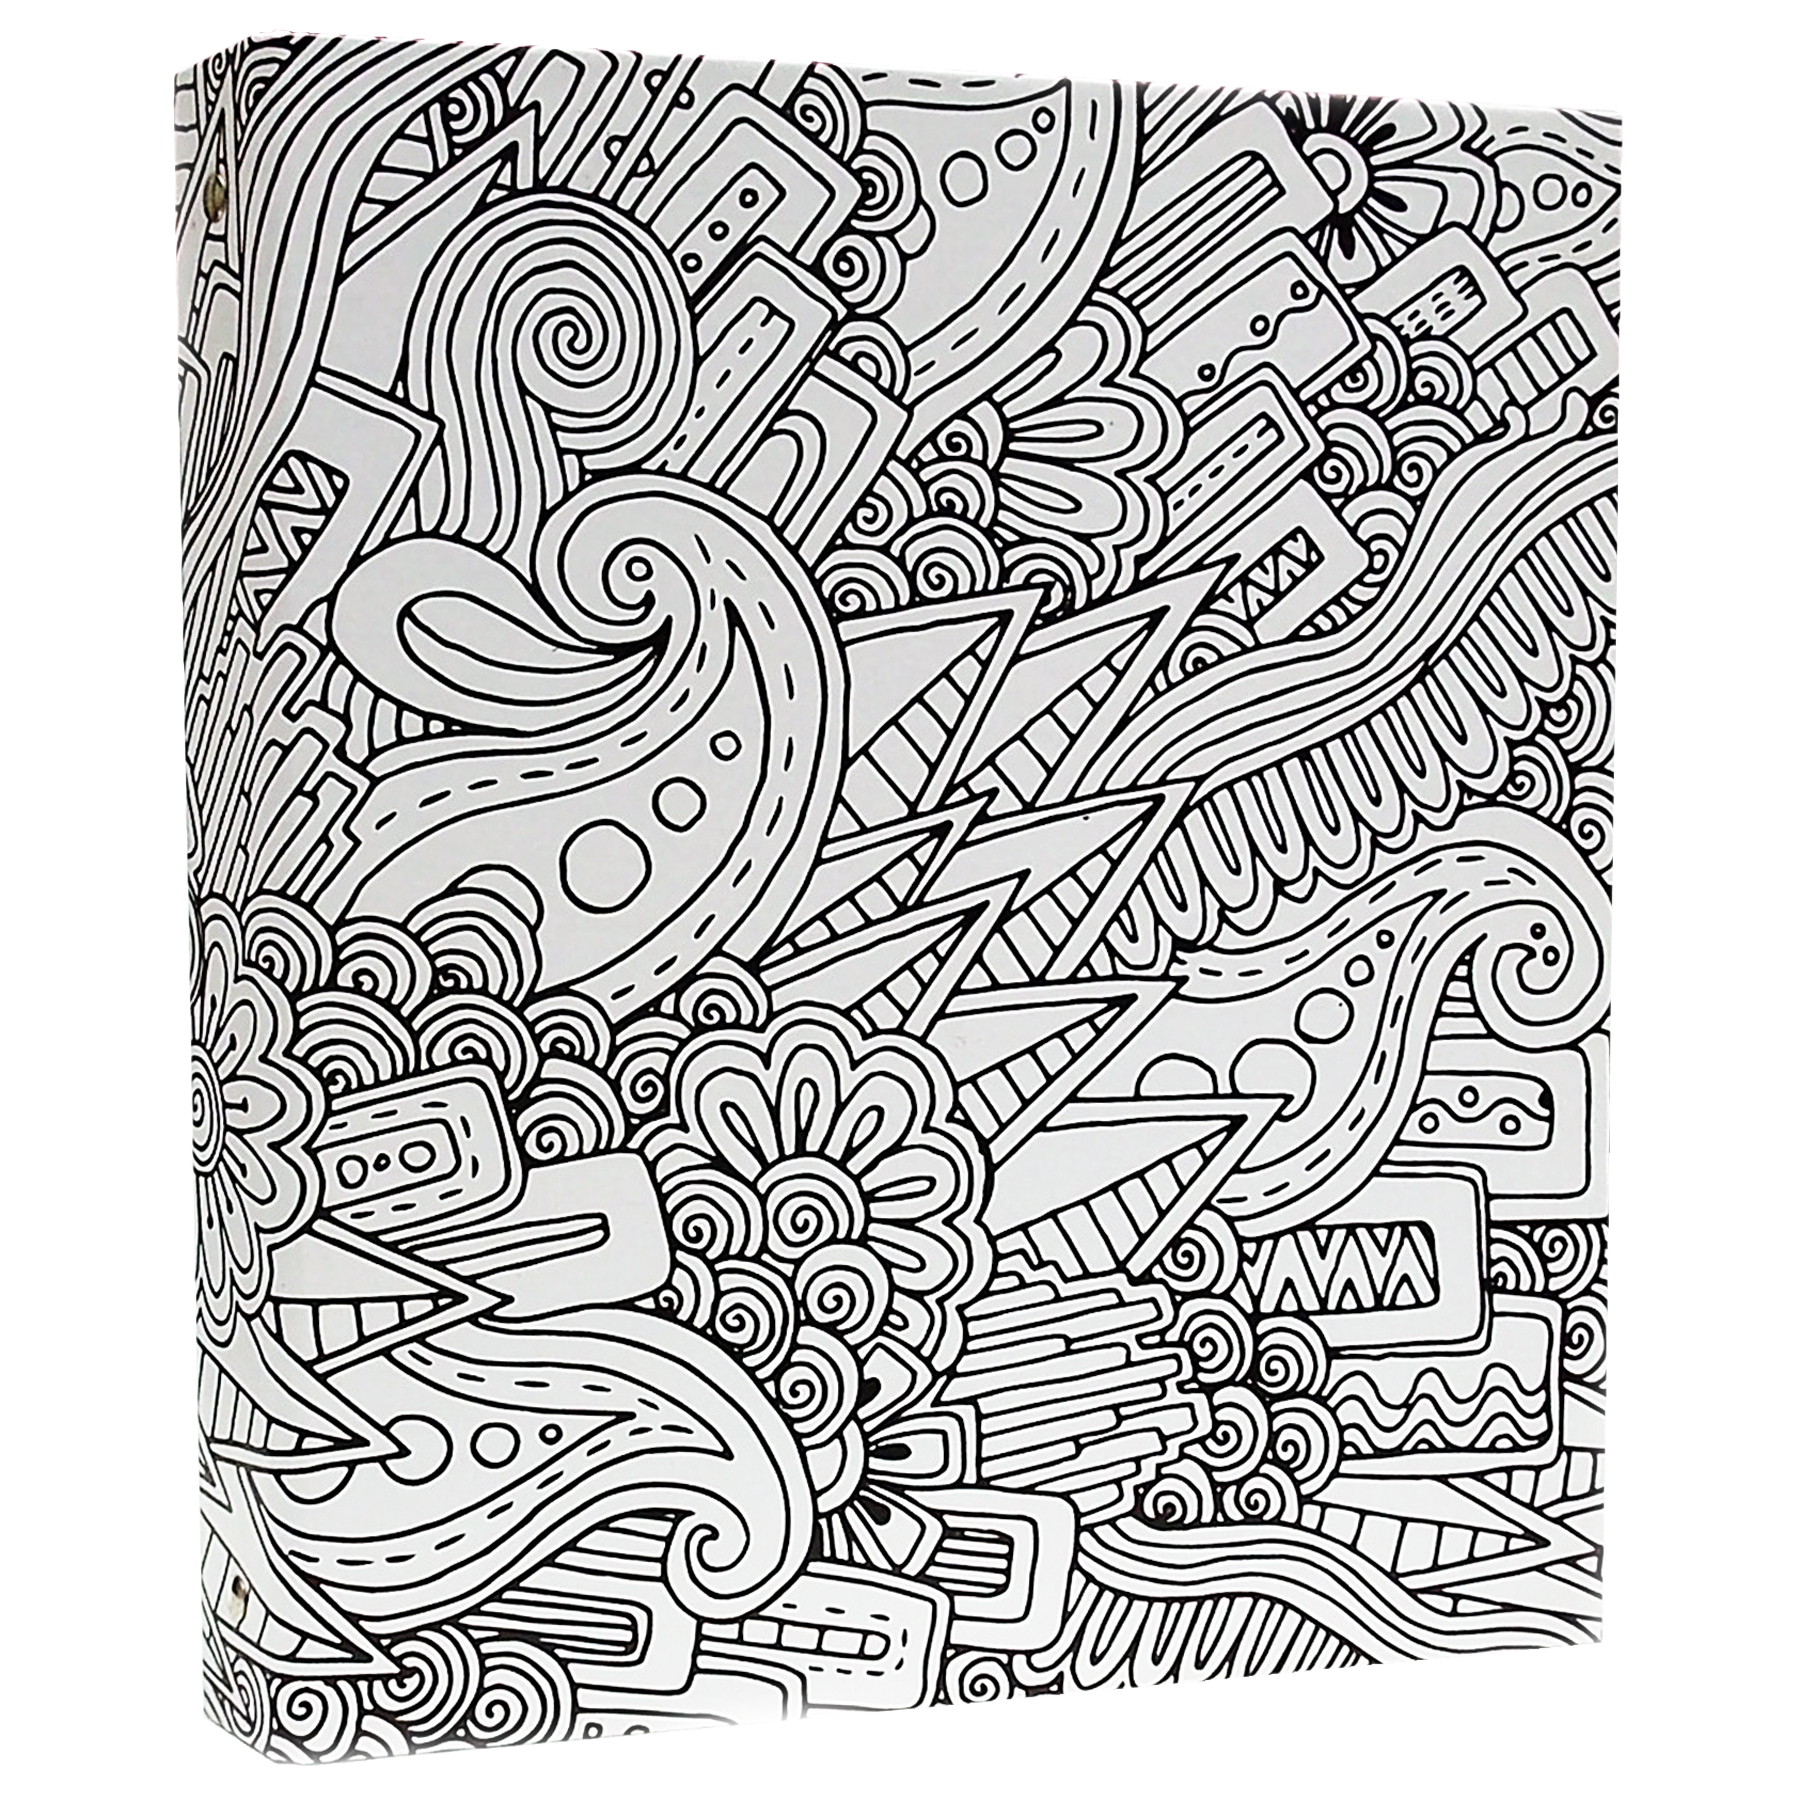 1800x1800 Illustrator Coloring Binder In A Abstract Design, 1 Inch, 3 Ring